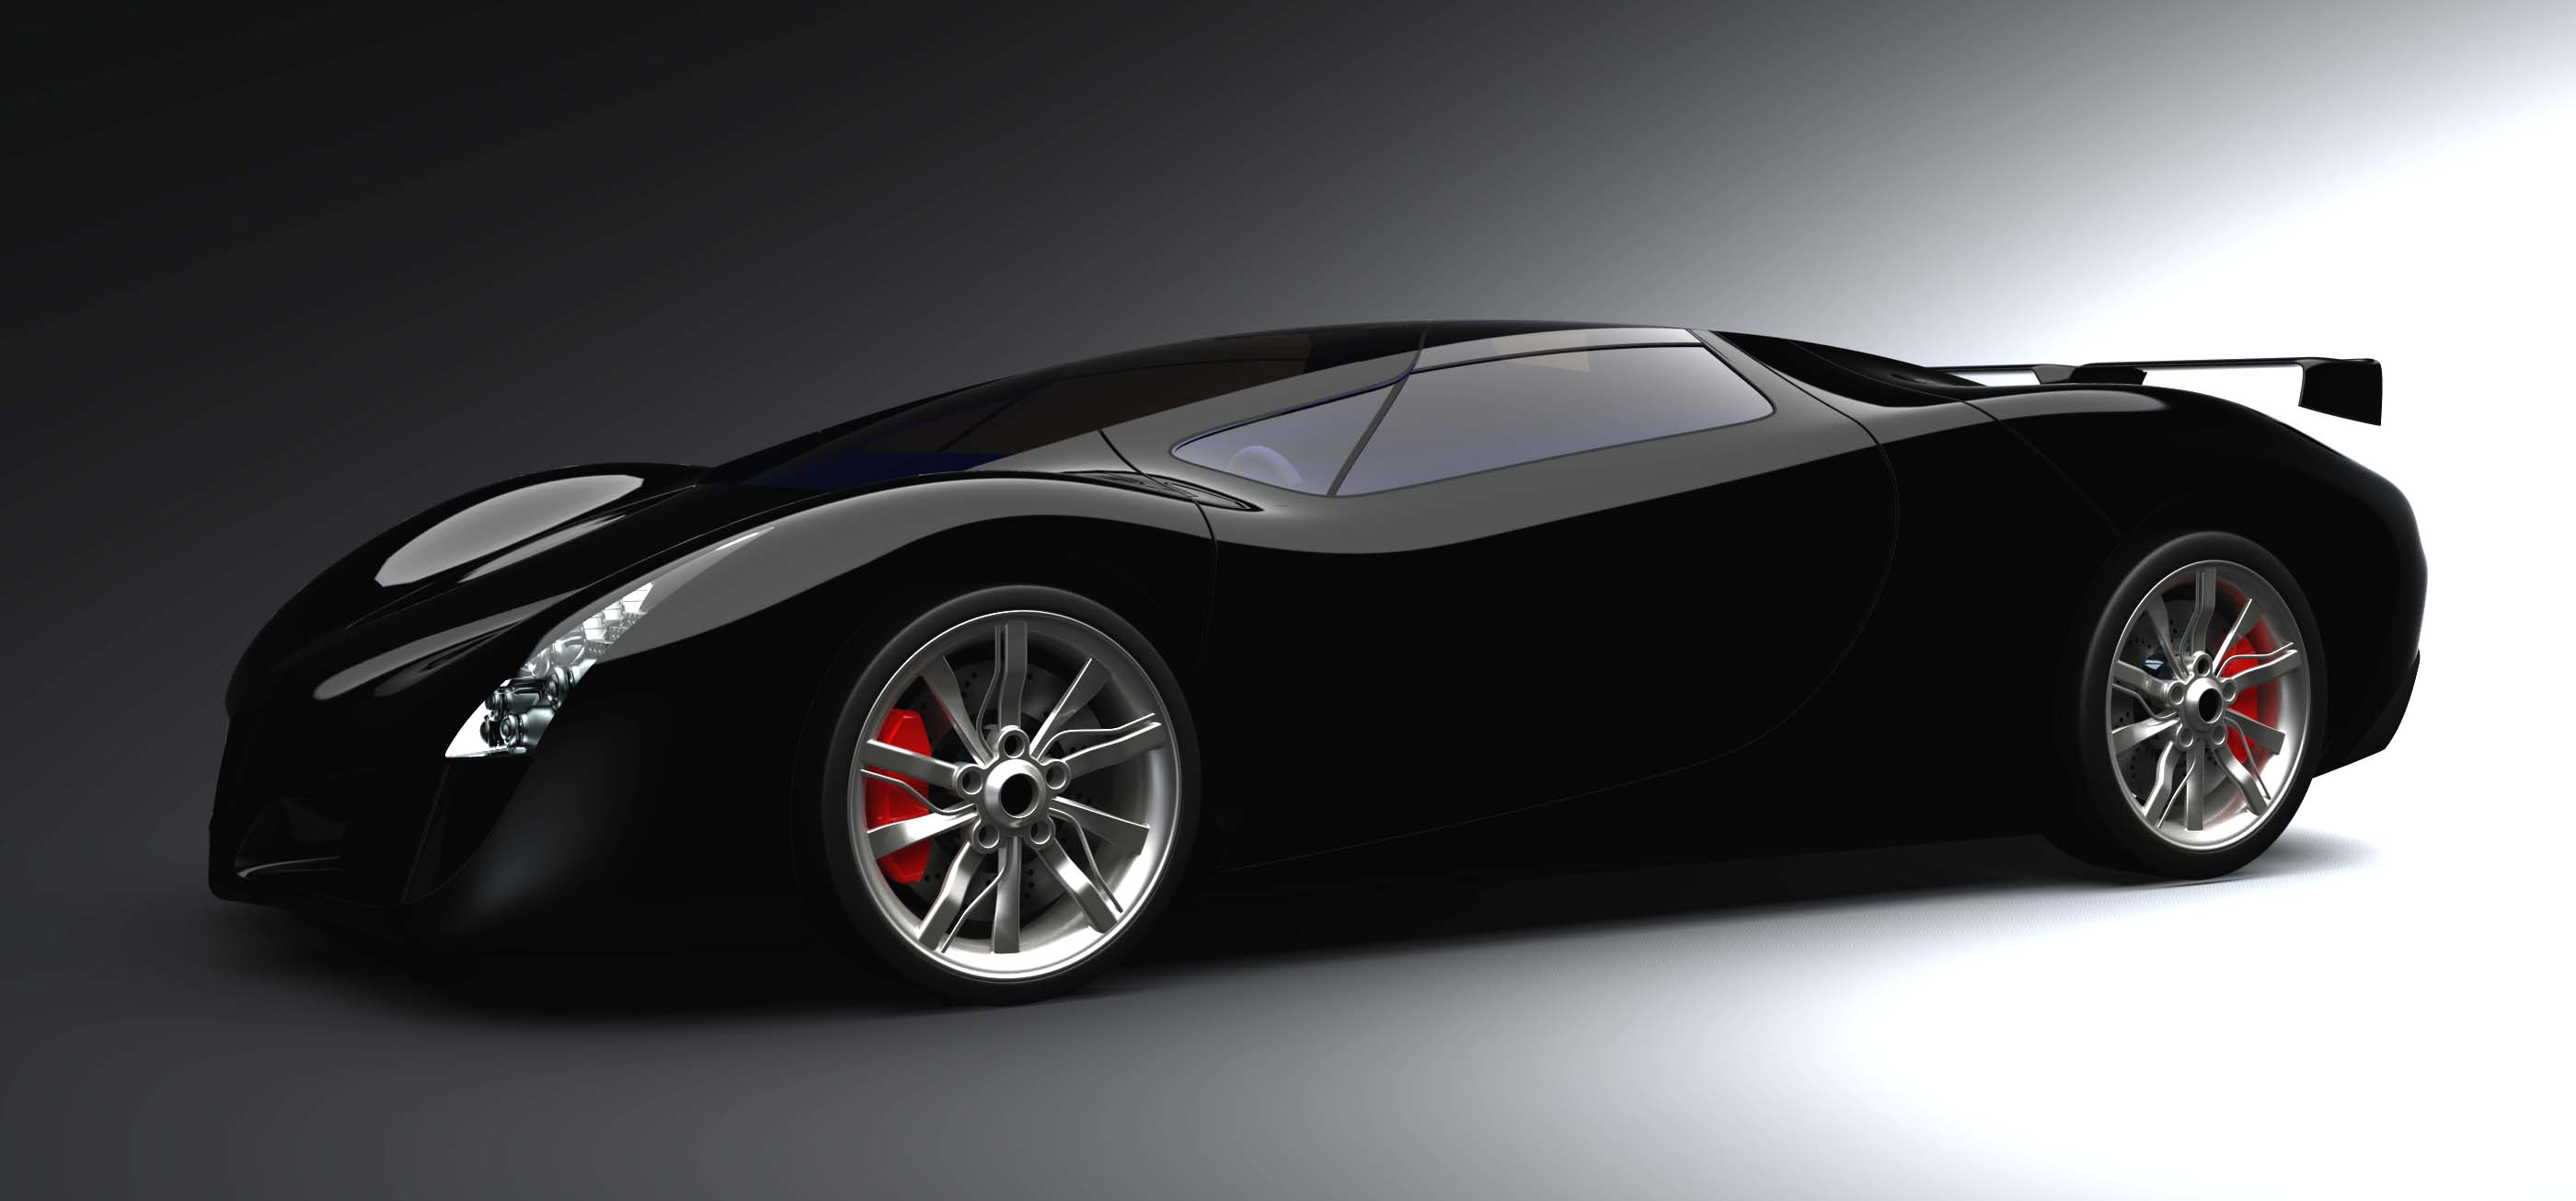 Mega Engineering Vehicle Have Developed Zero Emission Super Sports Car  Concept With Megau0027s Electric Sport Cars!